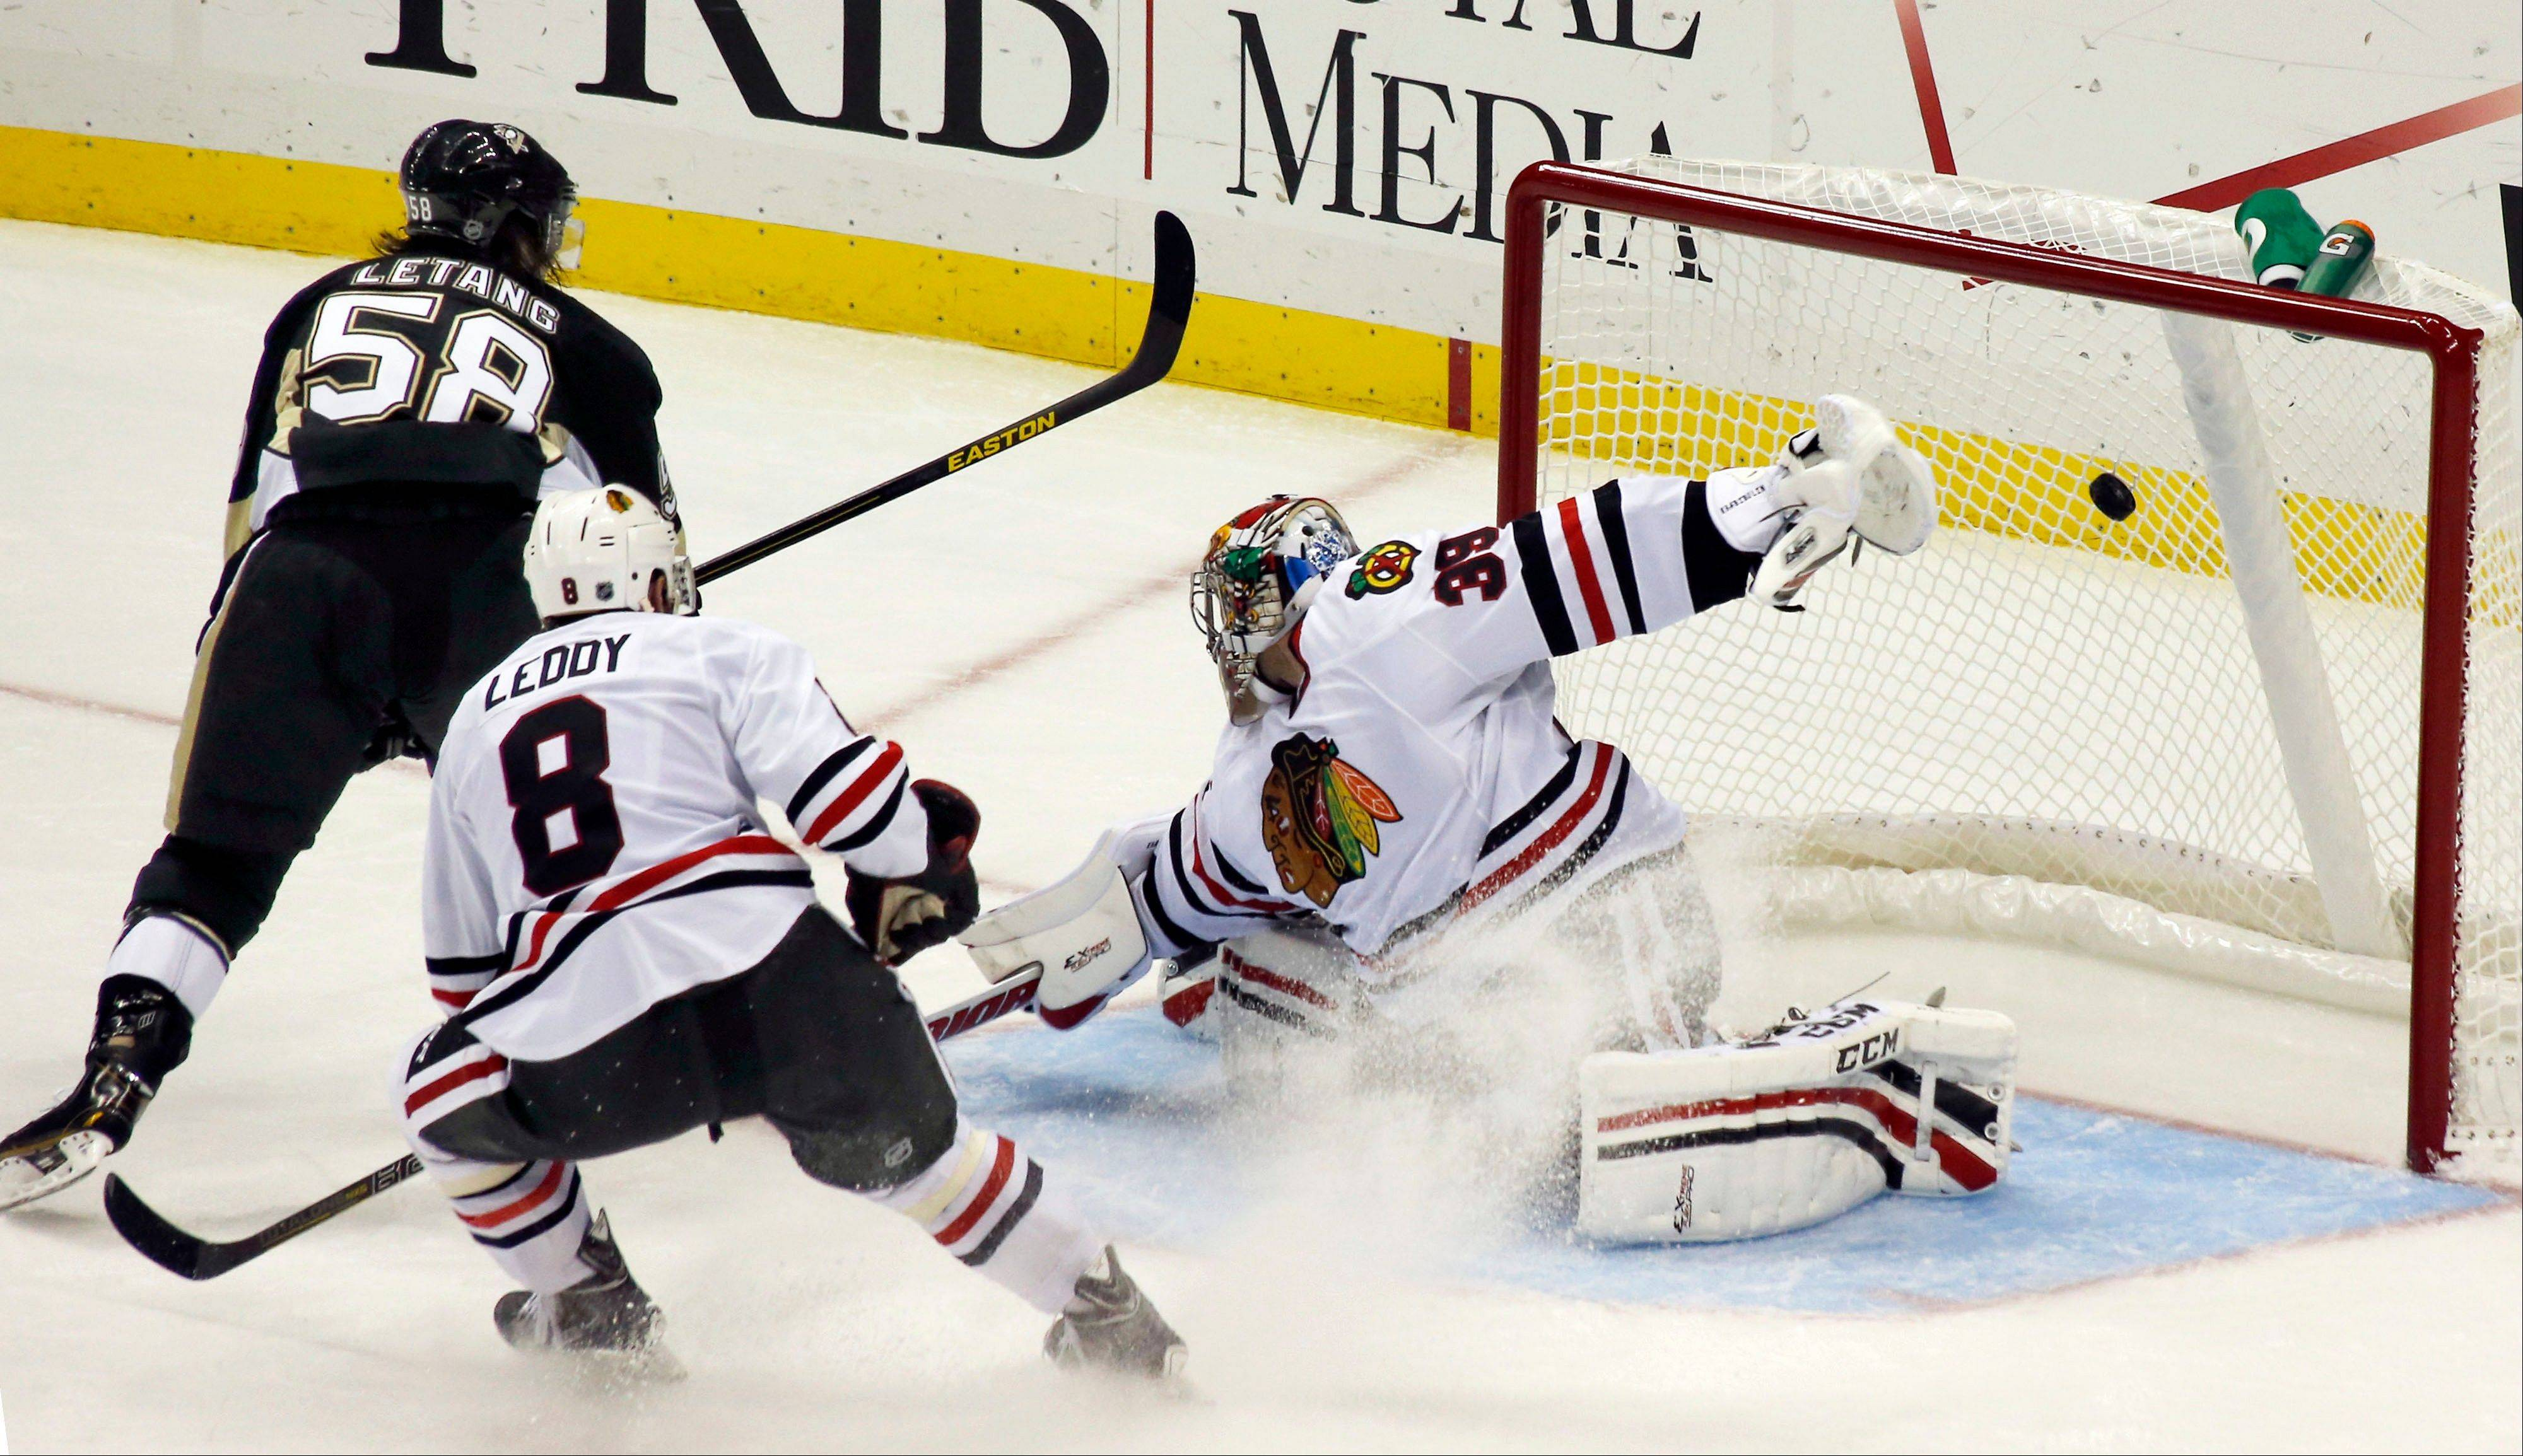 The Penguins� Kris Letang scores the first of his 2 goals on Blackhawks goalie Nikolai Khabibulin in the third period Monday night.